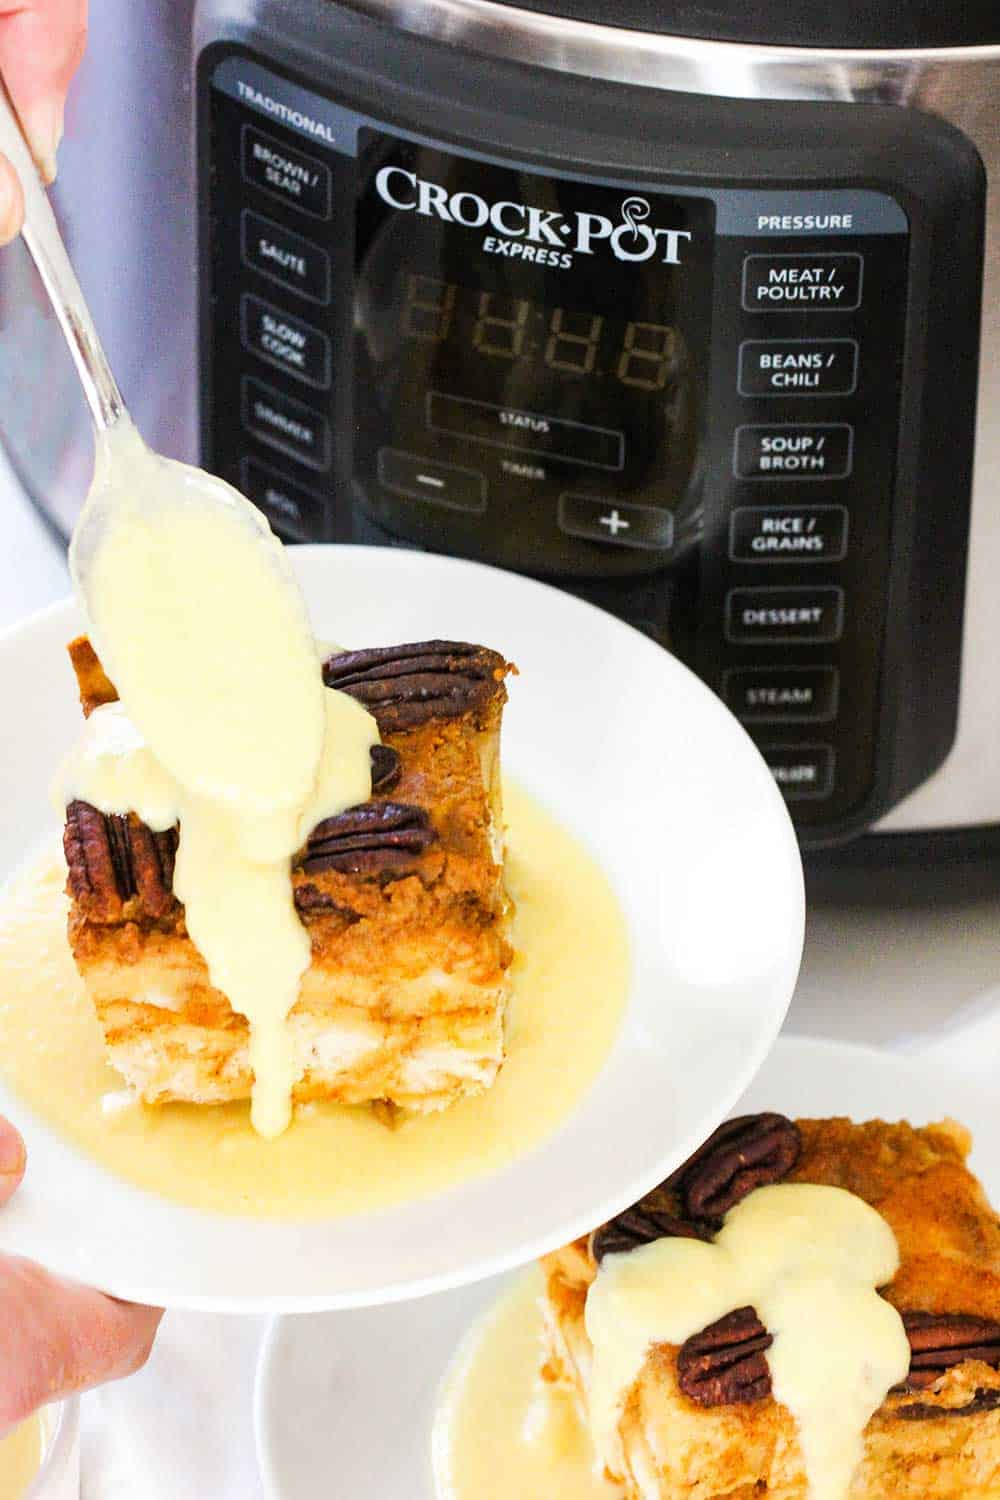 A spoon pouring custard onto a plate of pumpkin bread pudding next to a pressure cooker.